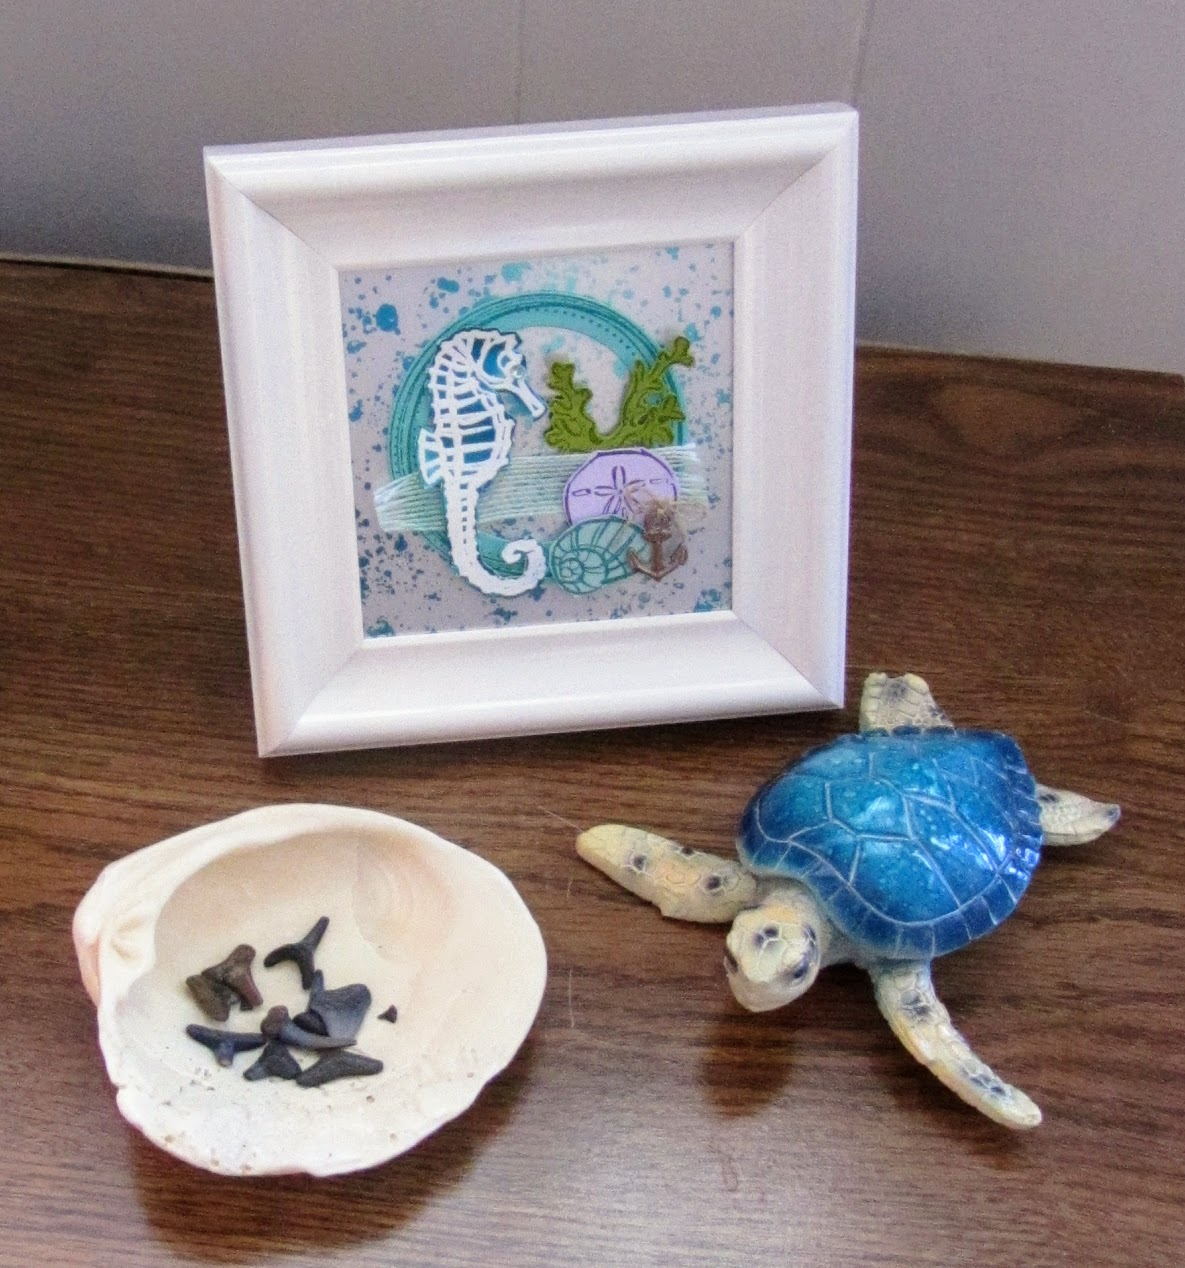 Stampin-Up-Seaside-Notions-Vignette-of-Framed-Art.